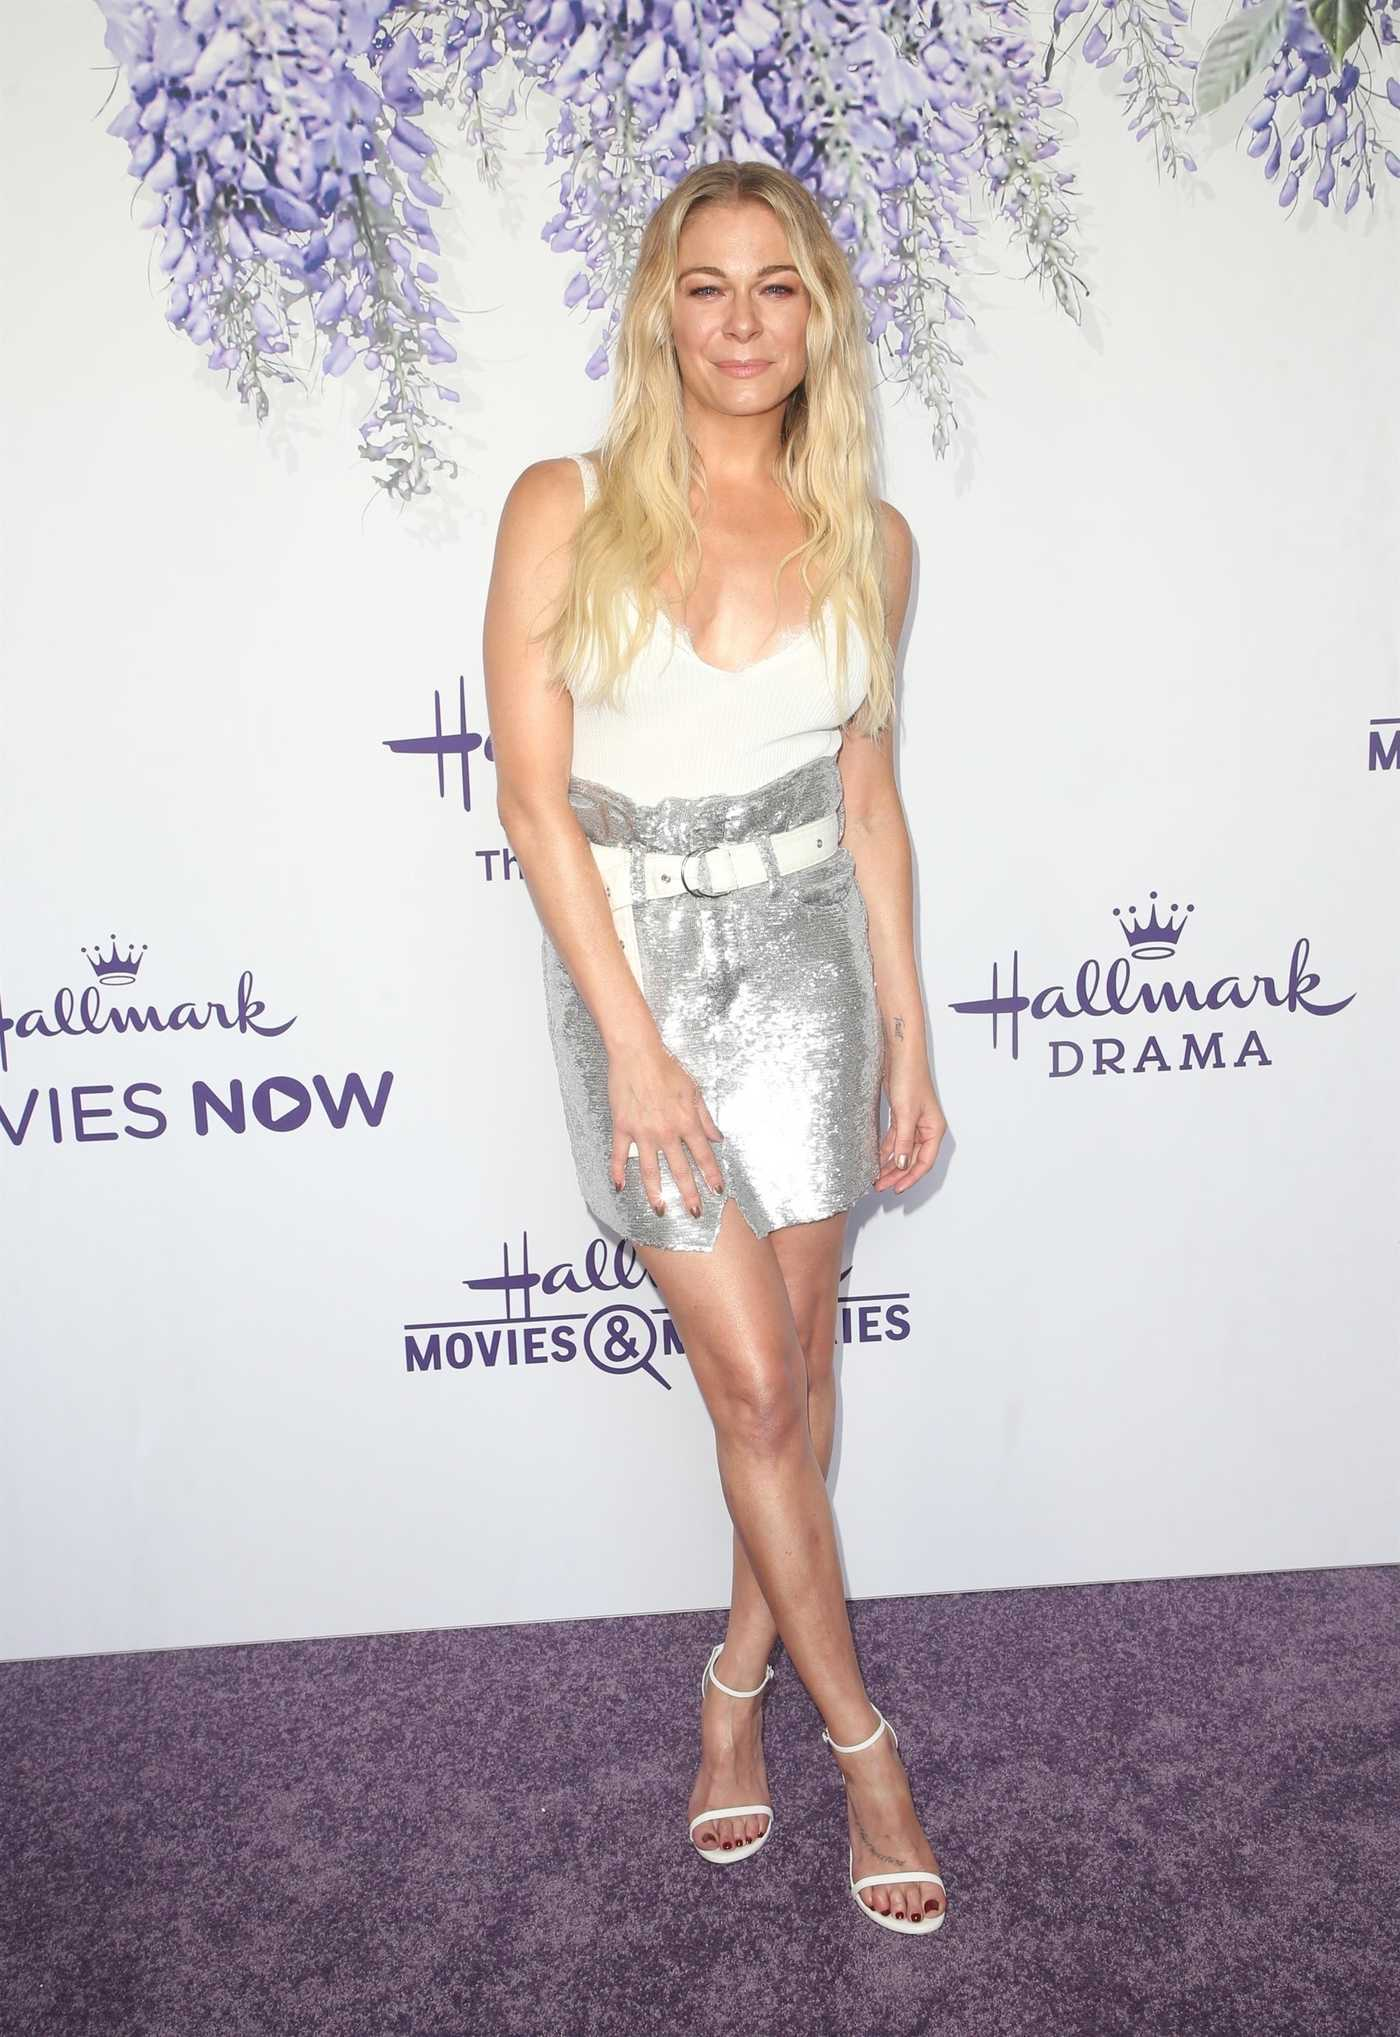 LeAnn Rimes Attends Hallmark's Evening Gala TCA Summer Press Tour in LA 07/26/2018